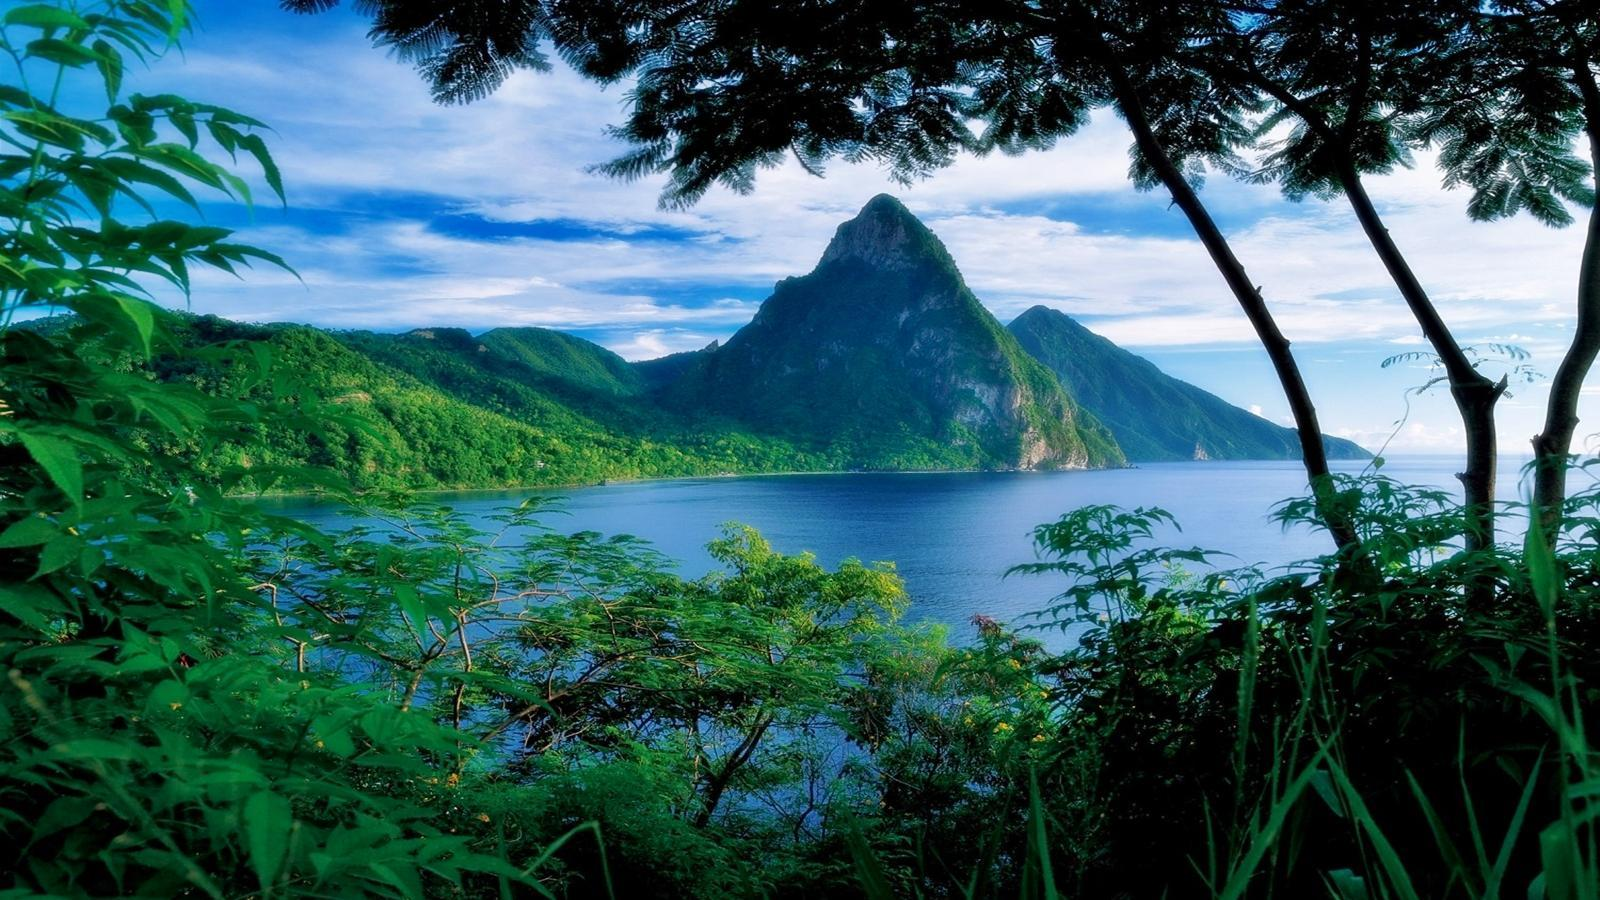 St Lucia Wallpapers - WallpaperSafari | Adorable Wallpapers ...